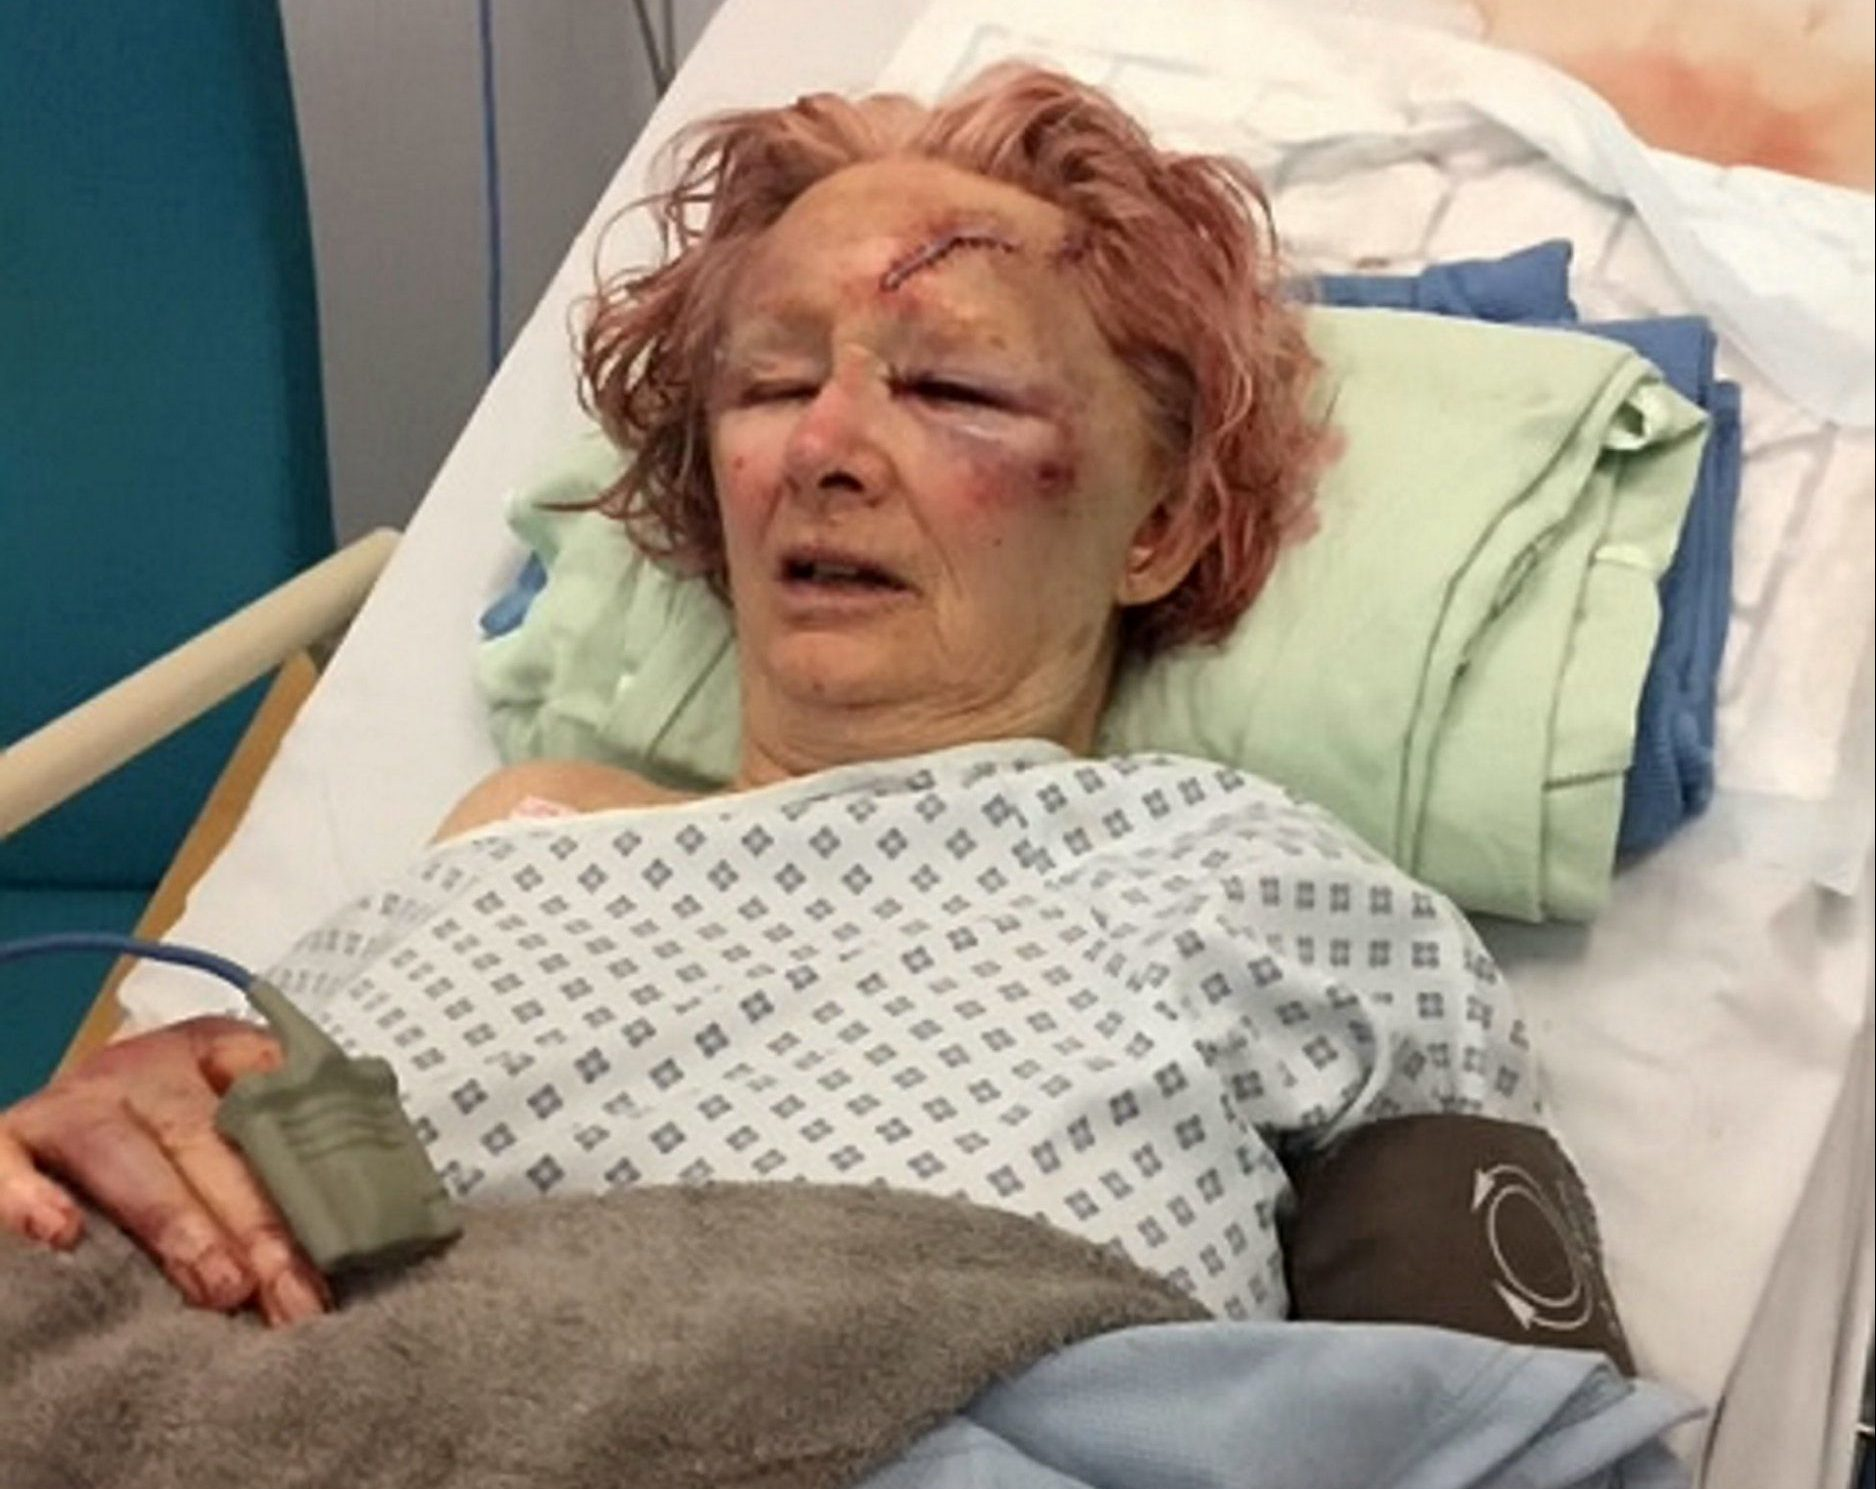 Elderly women beaten around the head with a torch by her partner